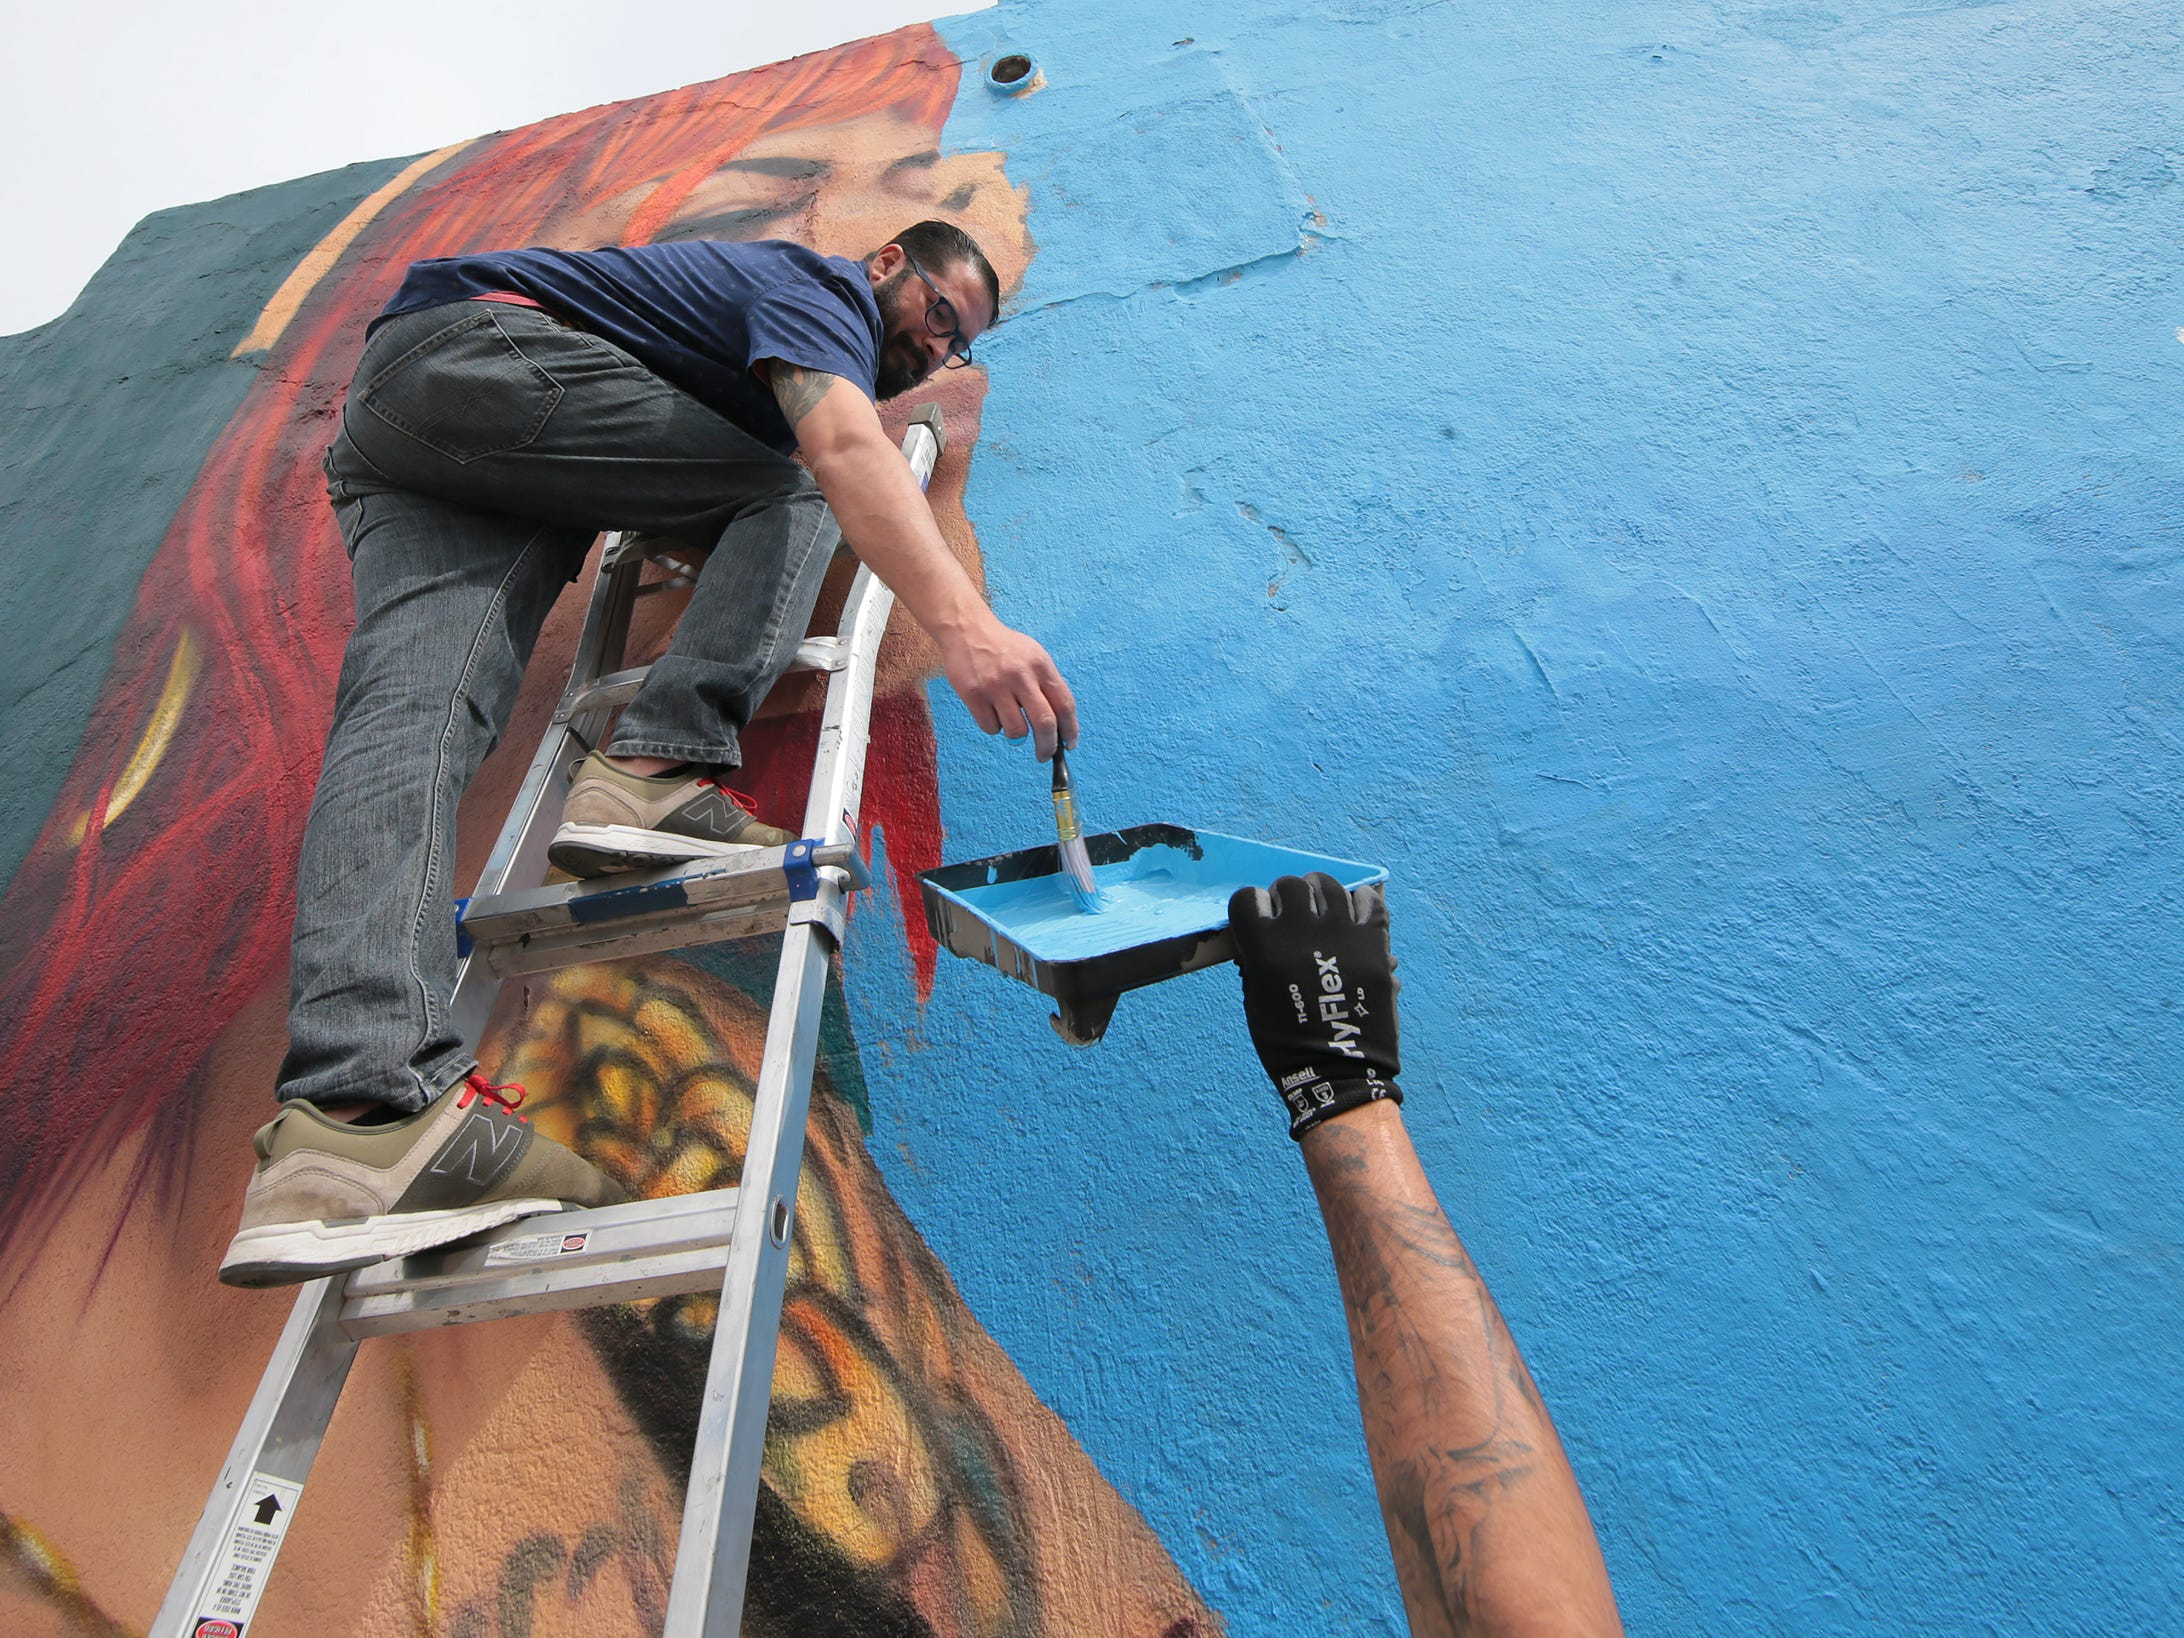 """El Paso muralist Cimi Alvarado is working to finish his latest mural at the corner of Tays and Delta in the Segundo Barrio. The mural follows closely a poem by Pavel Freidman, a child who was murdered at the Theresienstadt Concentration Camp. Alvarado said we can't repeat this history, citing the child migrant detention centers where refugees were being held.  The mural is a collaboration between Cimi Alvarado, The University of St. Thomas' VISION Program, Kalavera Culture Shop, Gloria Yrrobali and Martin """"Blast"""" Zubia."""